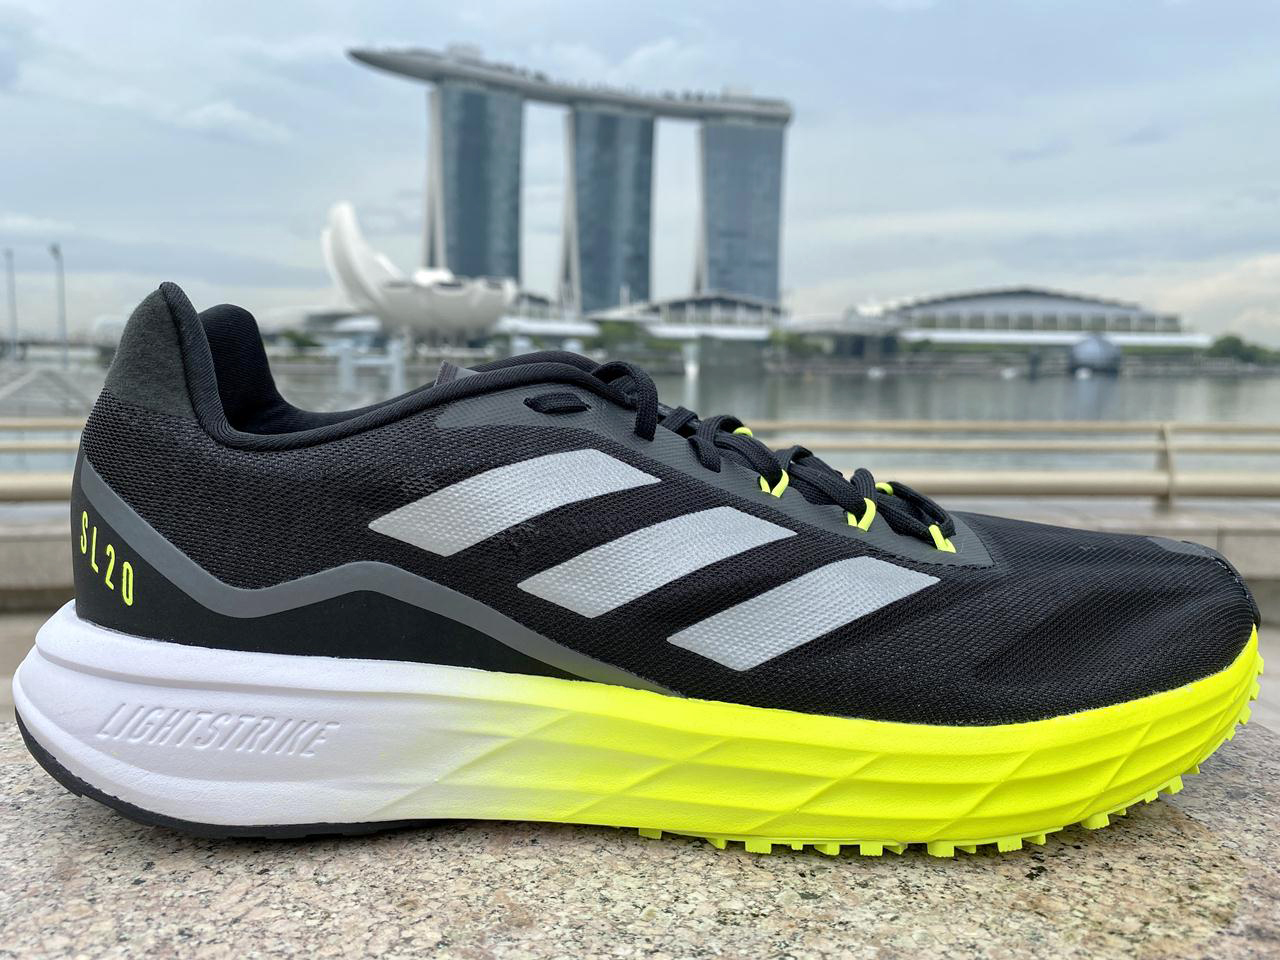 Adidas SL20.2 - Lateral Side.